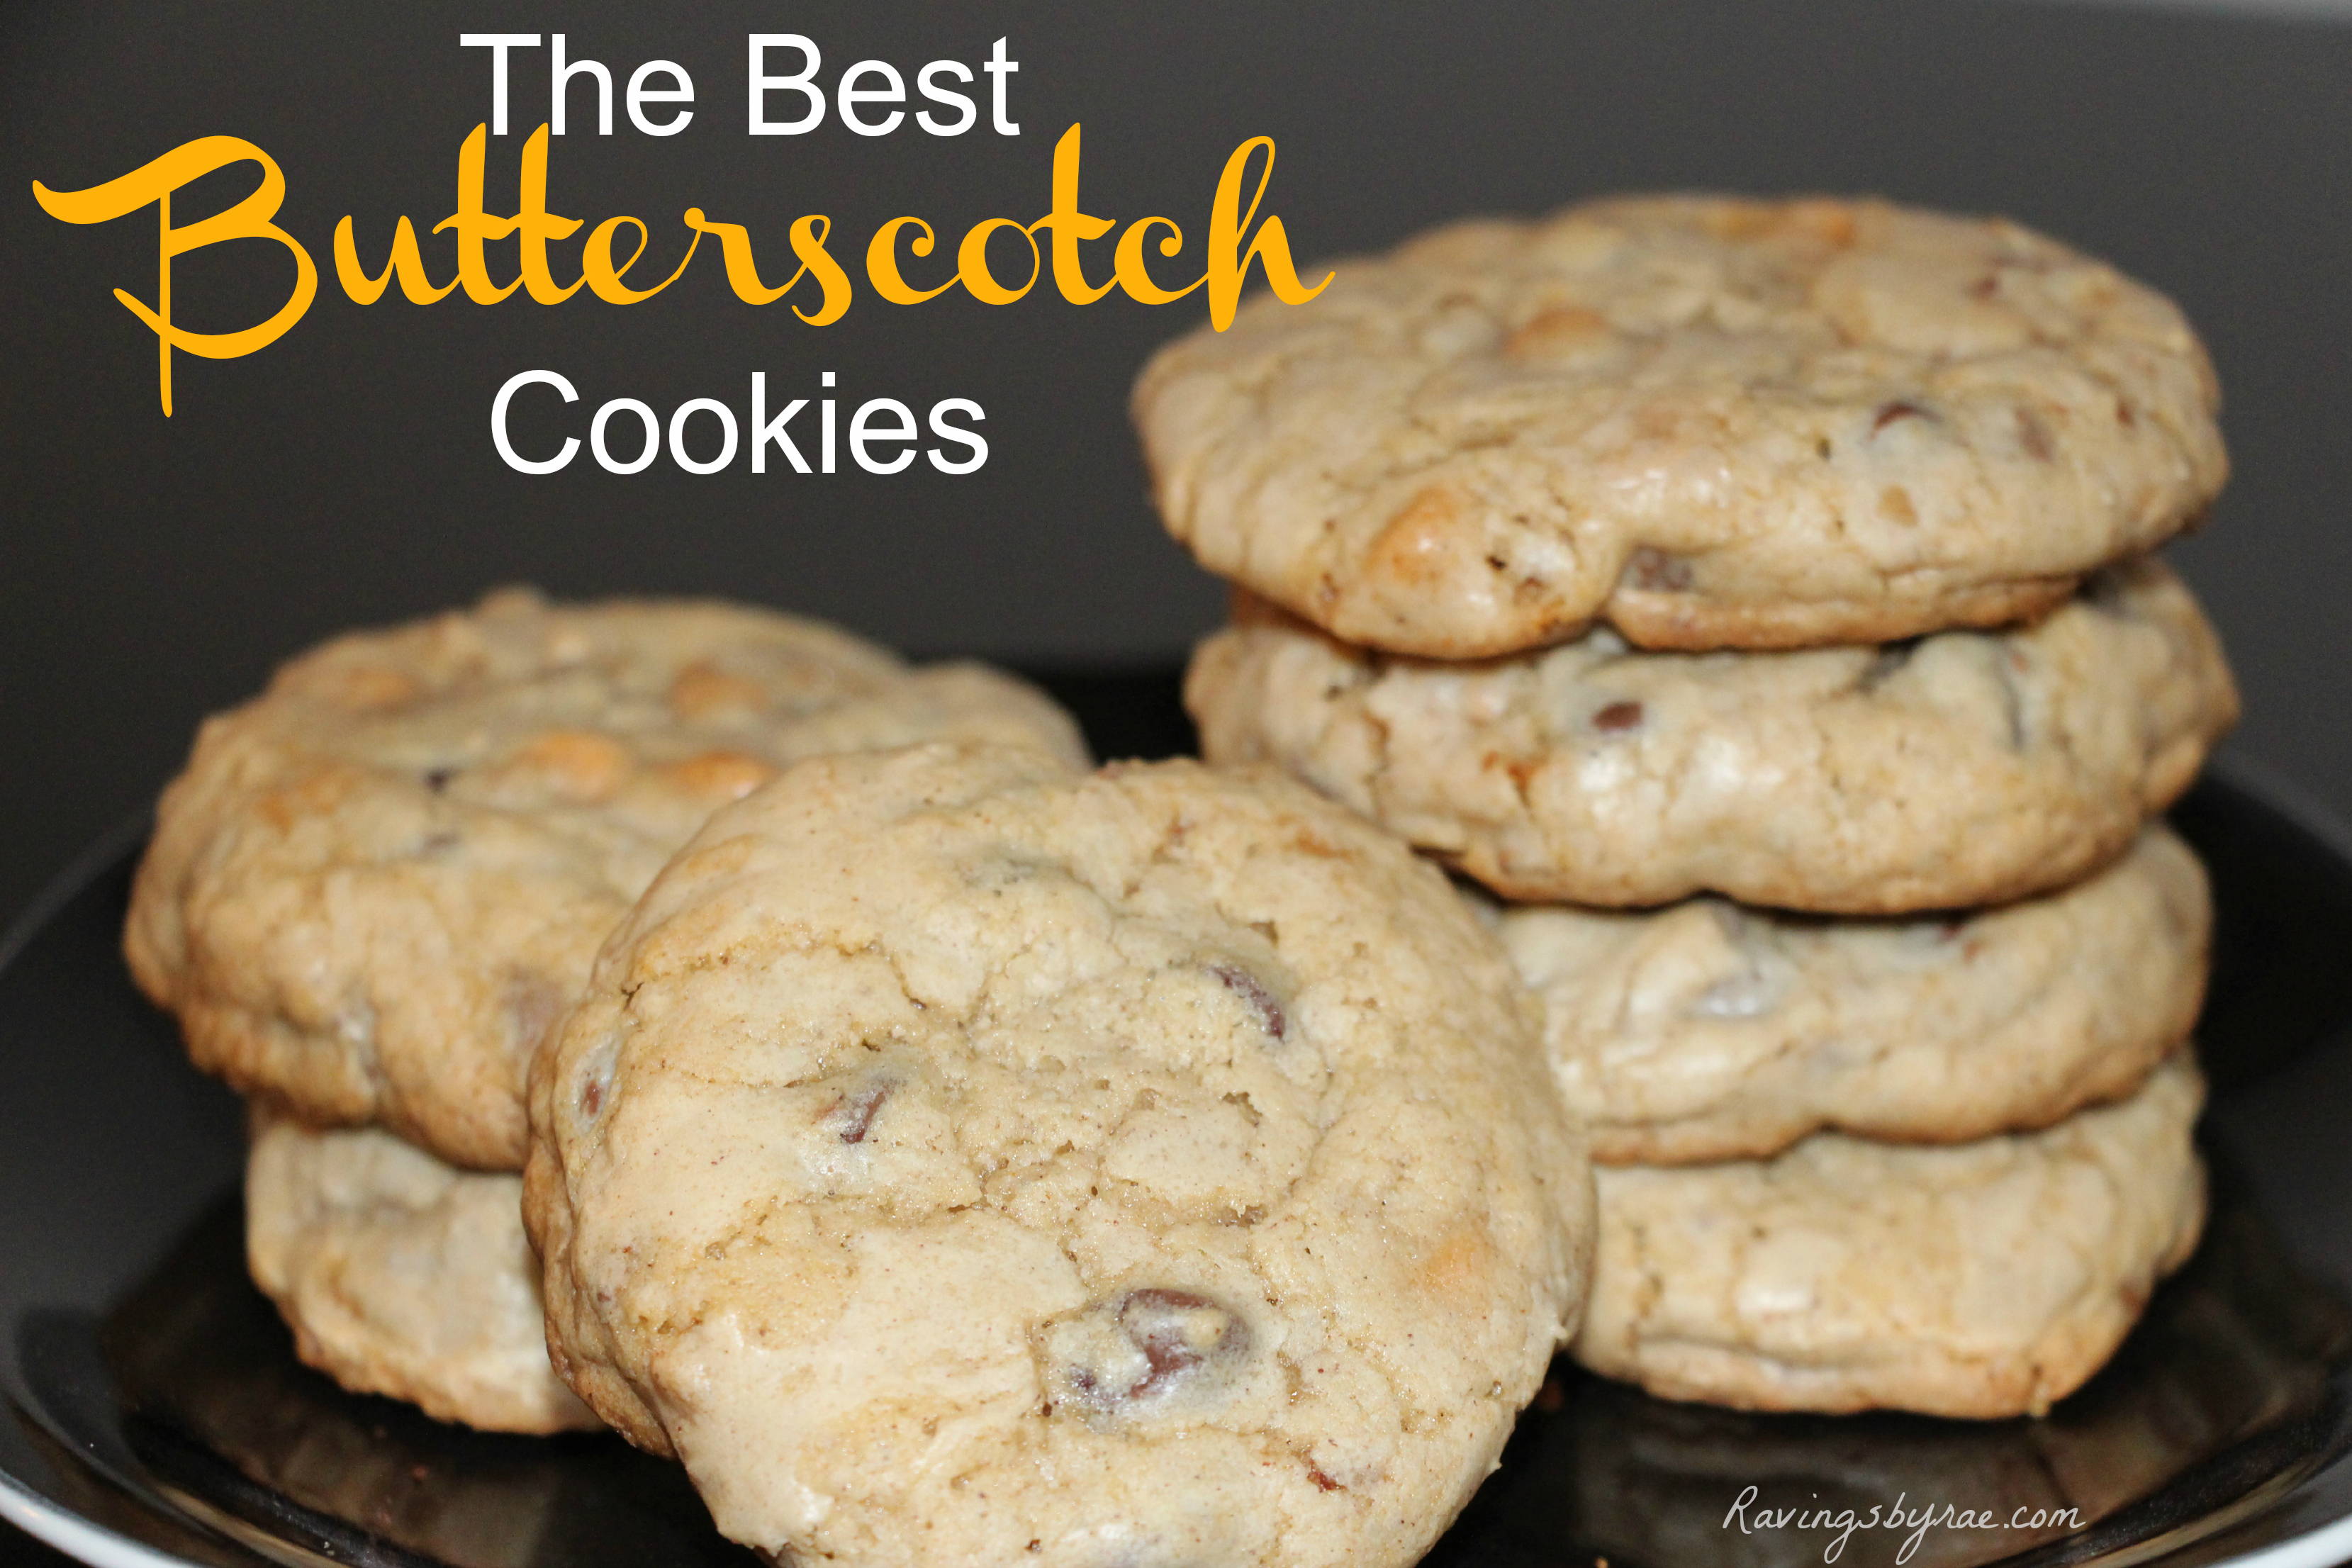 The Best Butterscotch Cookies